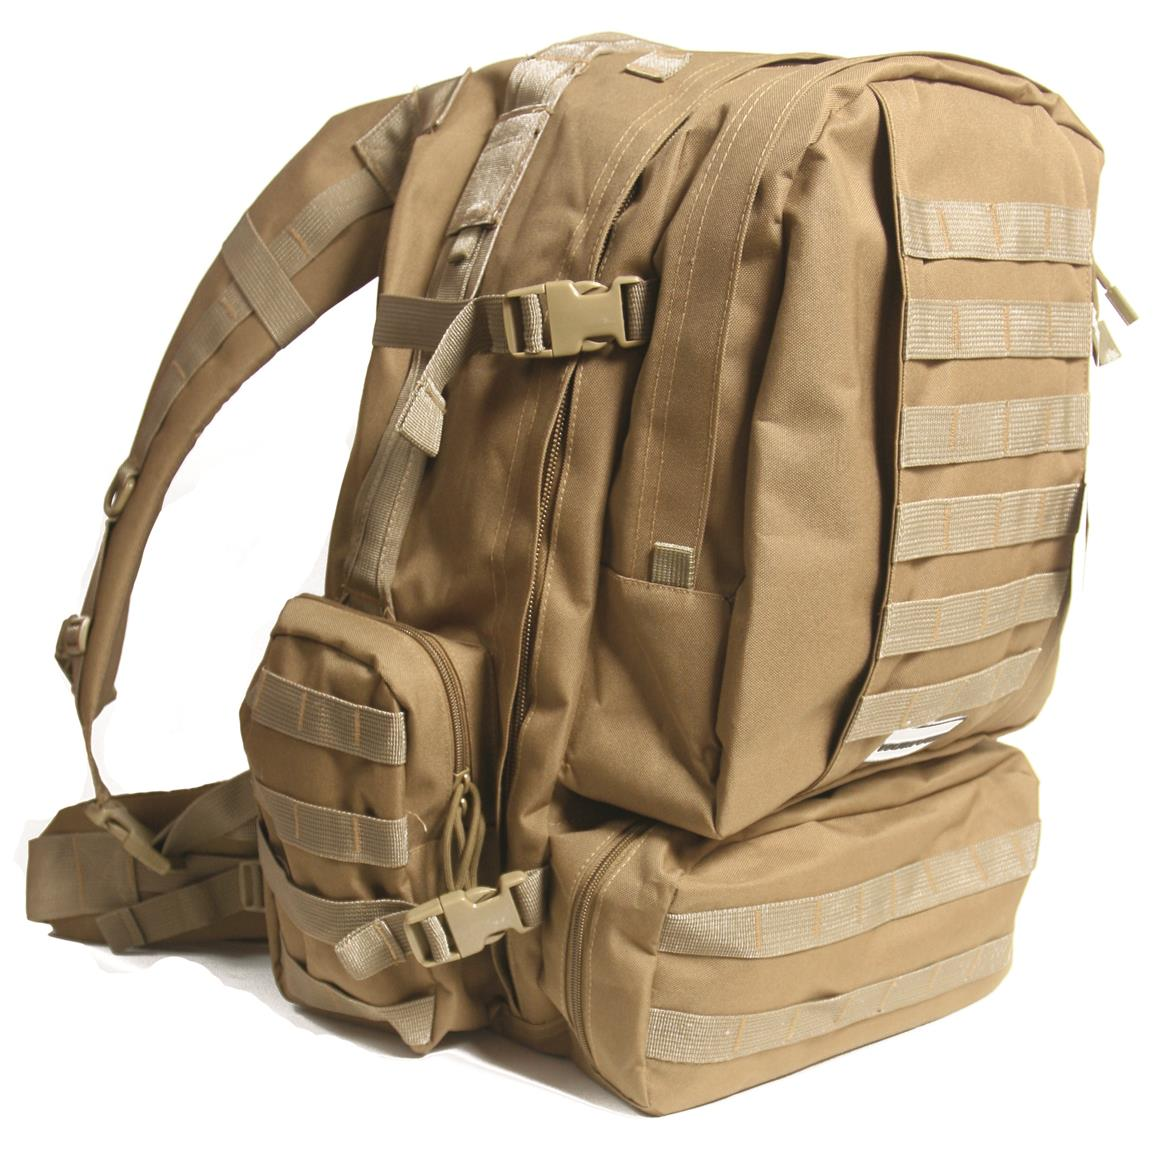 Humvee 3-Day Assault Backpack, Tan, Side